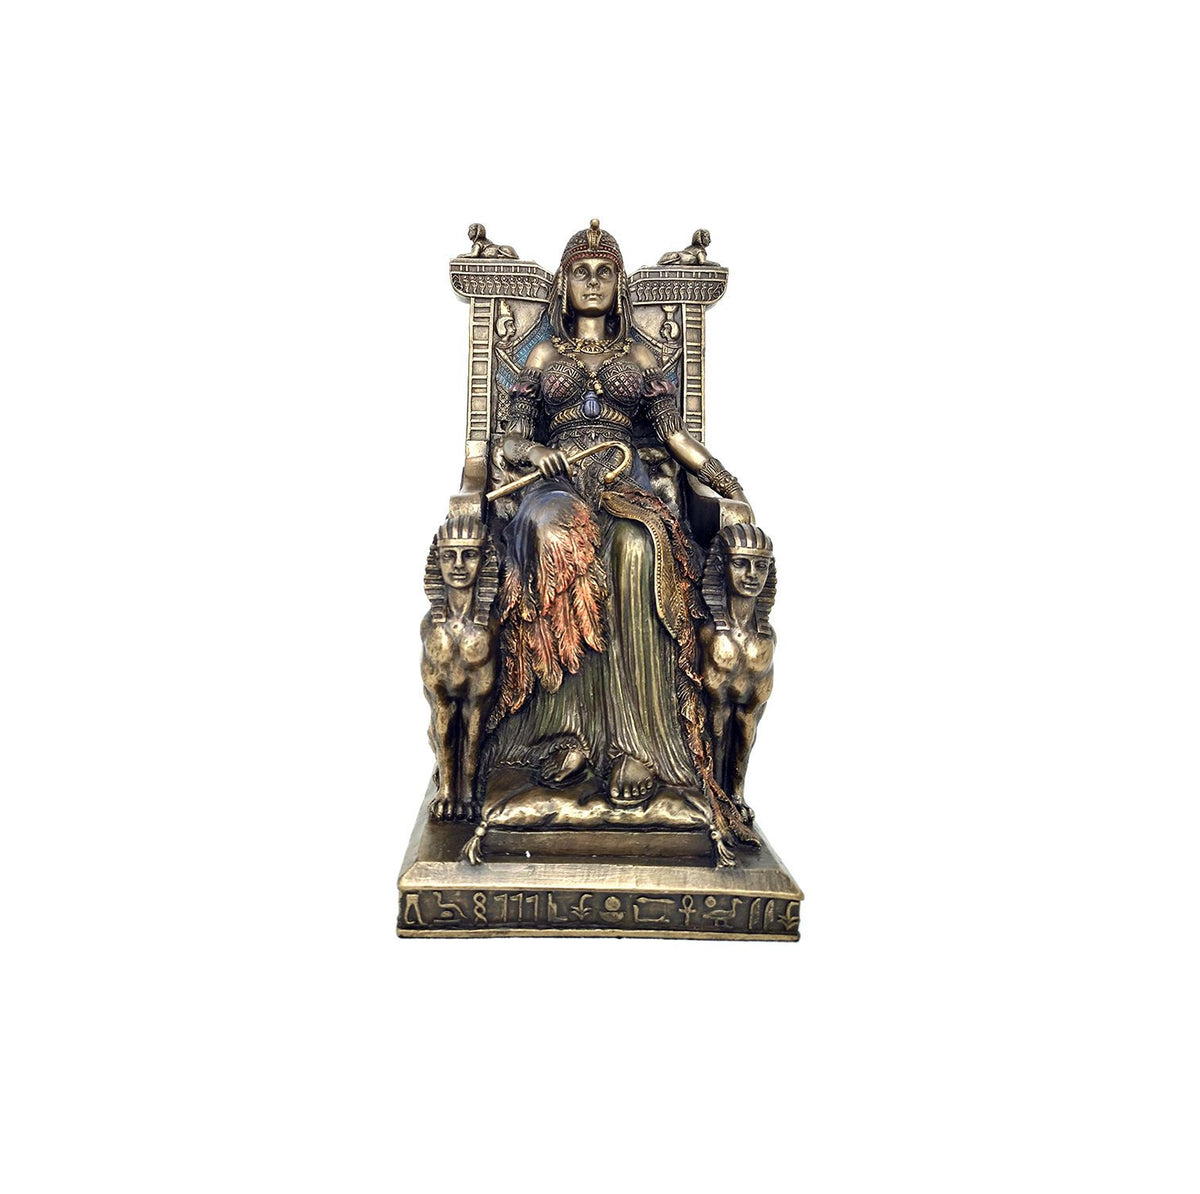 Queen Cleopatra on Ceremonial Throne Statue